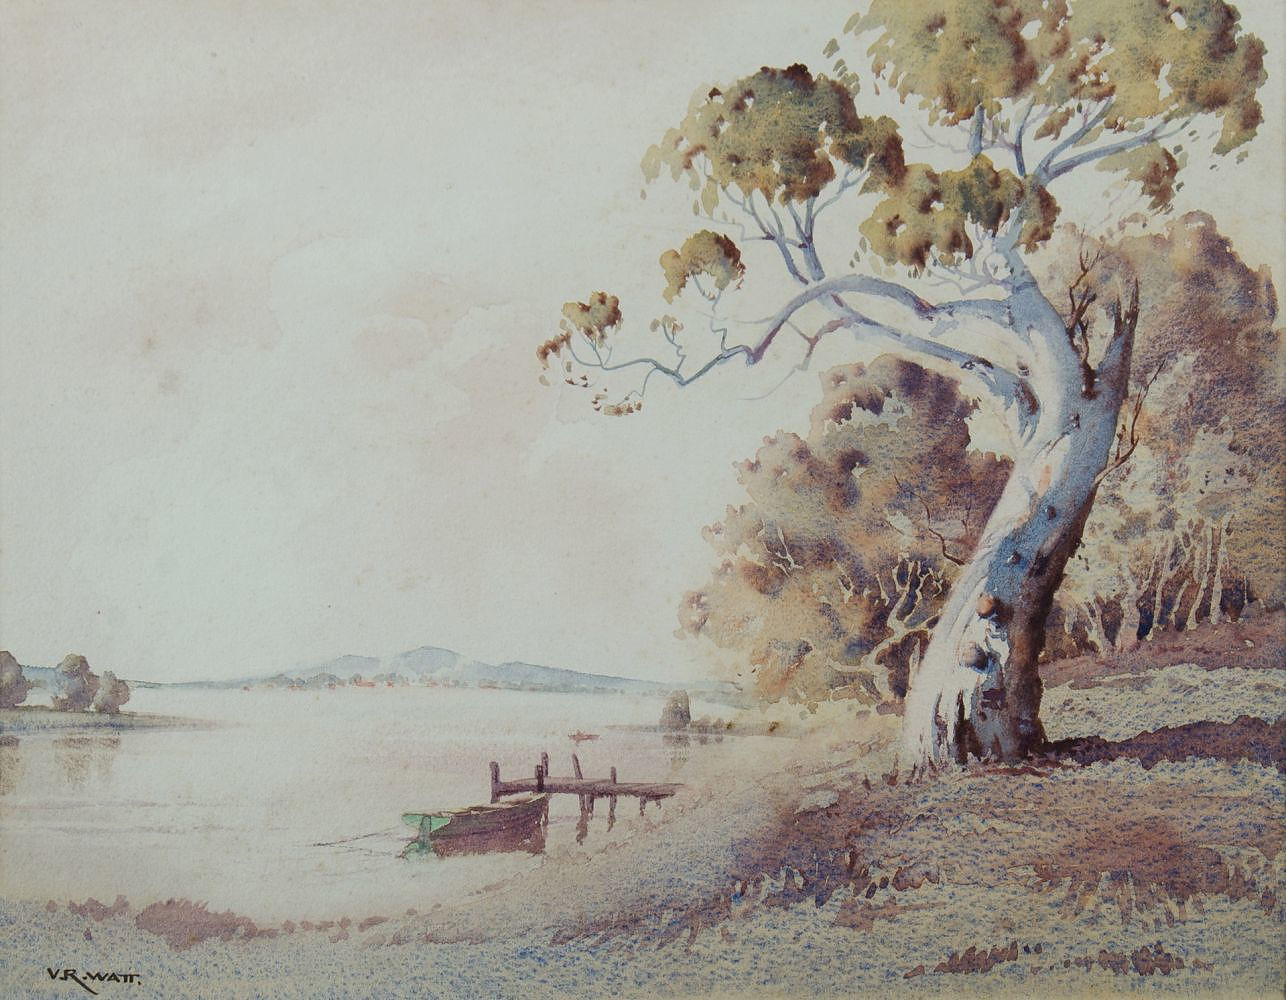 'WATT, Victor Robert (1886-1970) Forster, Tuncurry in Distance Watercolour'